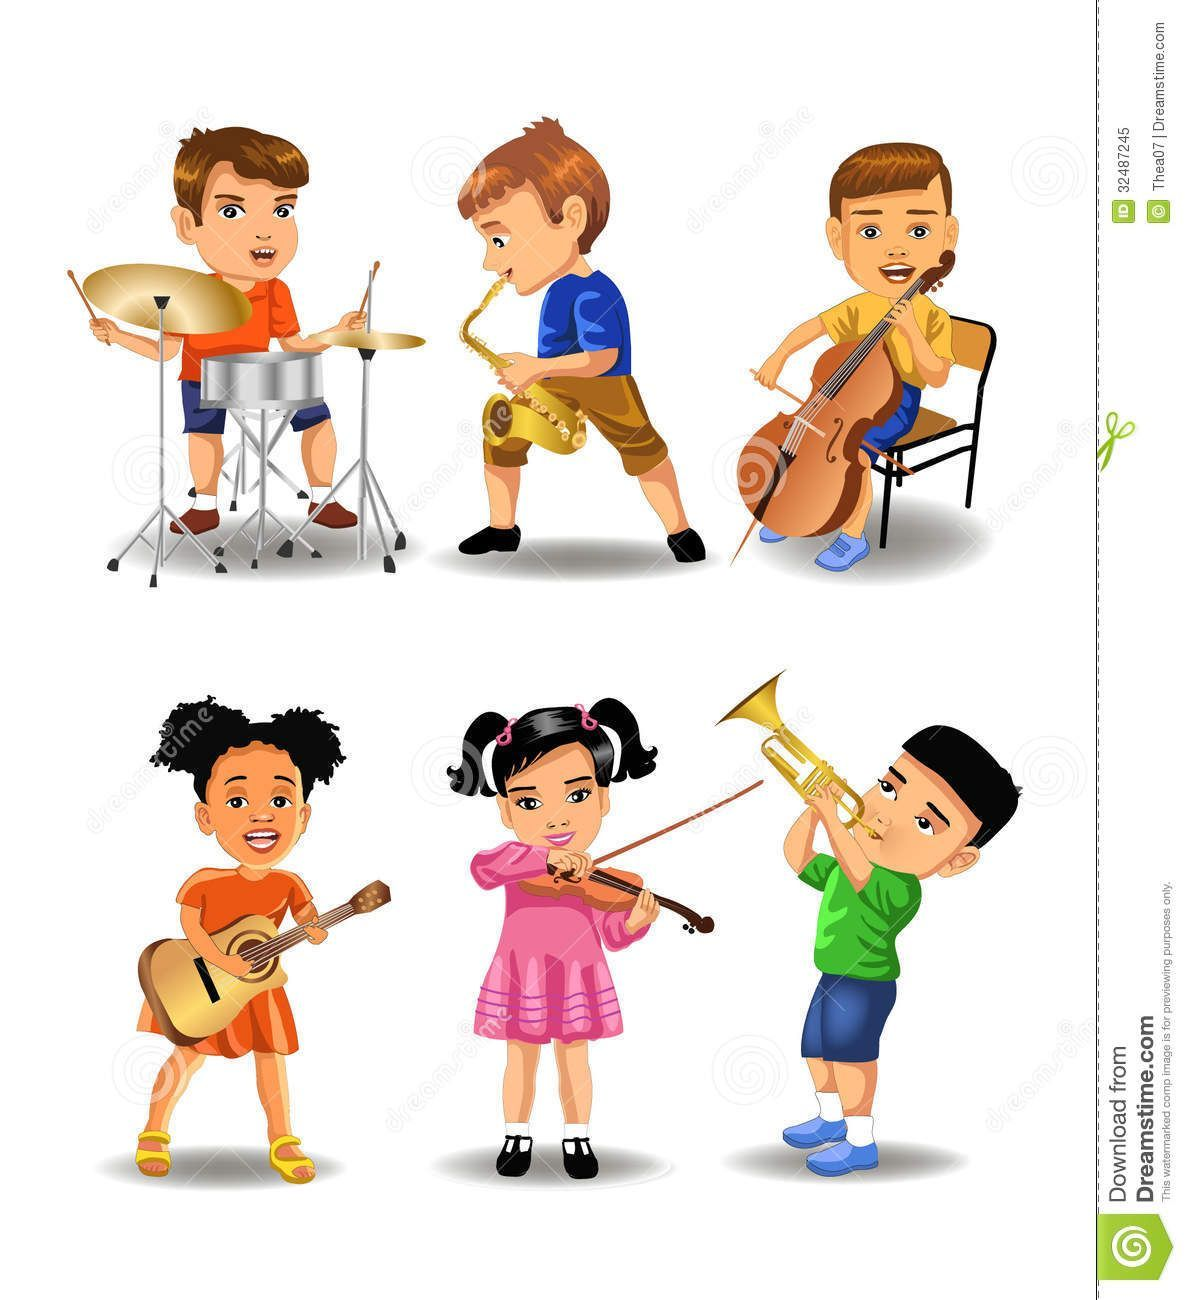 Kids playing musical instruments clipart 5 » Clipart Portal.